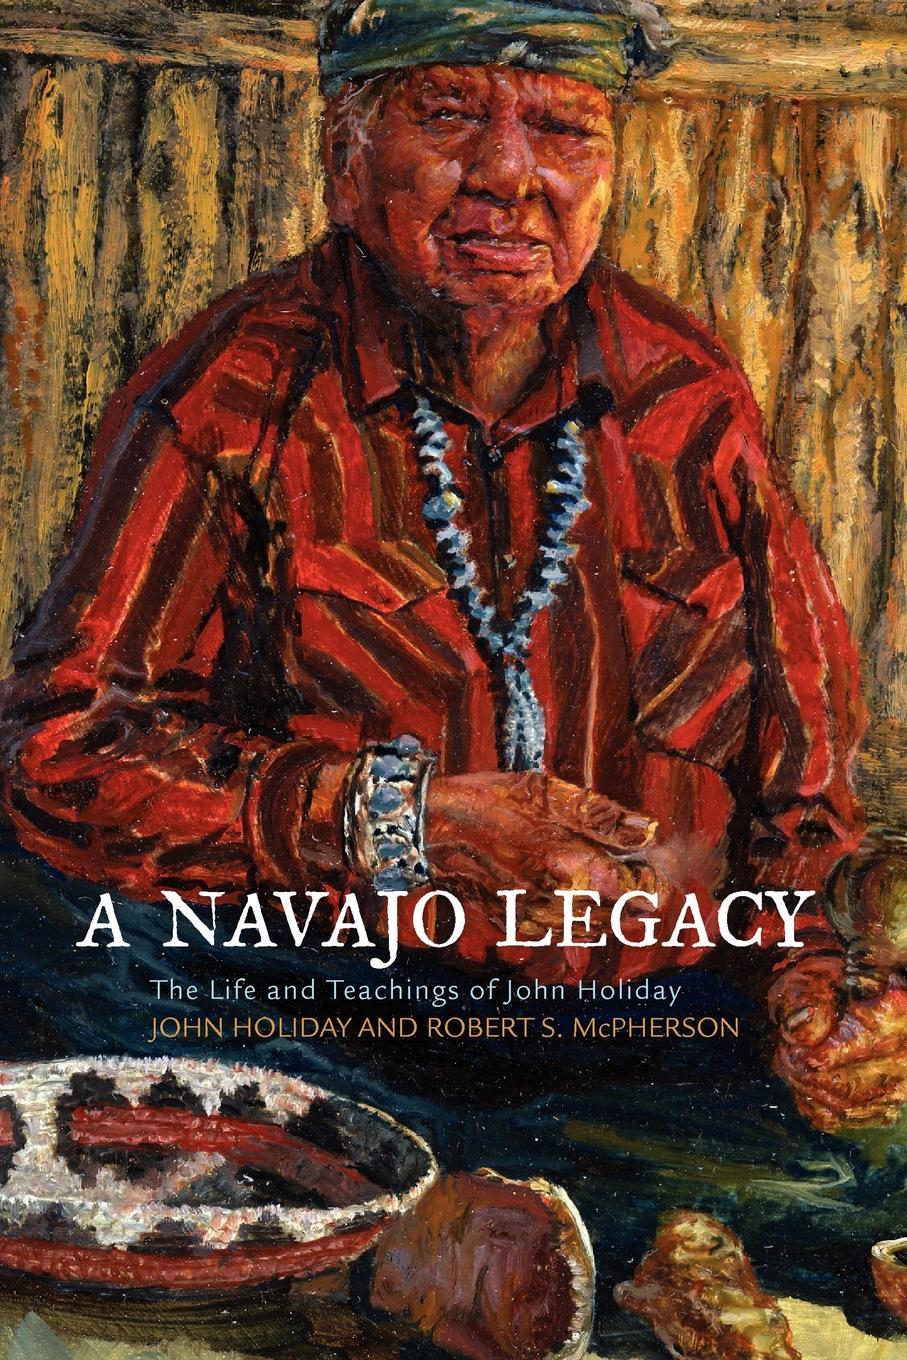 John Holiday, Robert McPherson A Navajo Legacy. The Life and Teachings of John Holiday holiday shapero lluvia suave the iconoclastic memoirs of holiday shapero book three